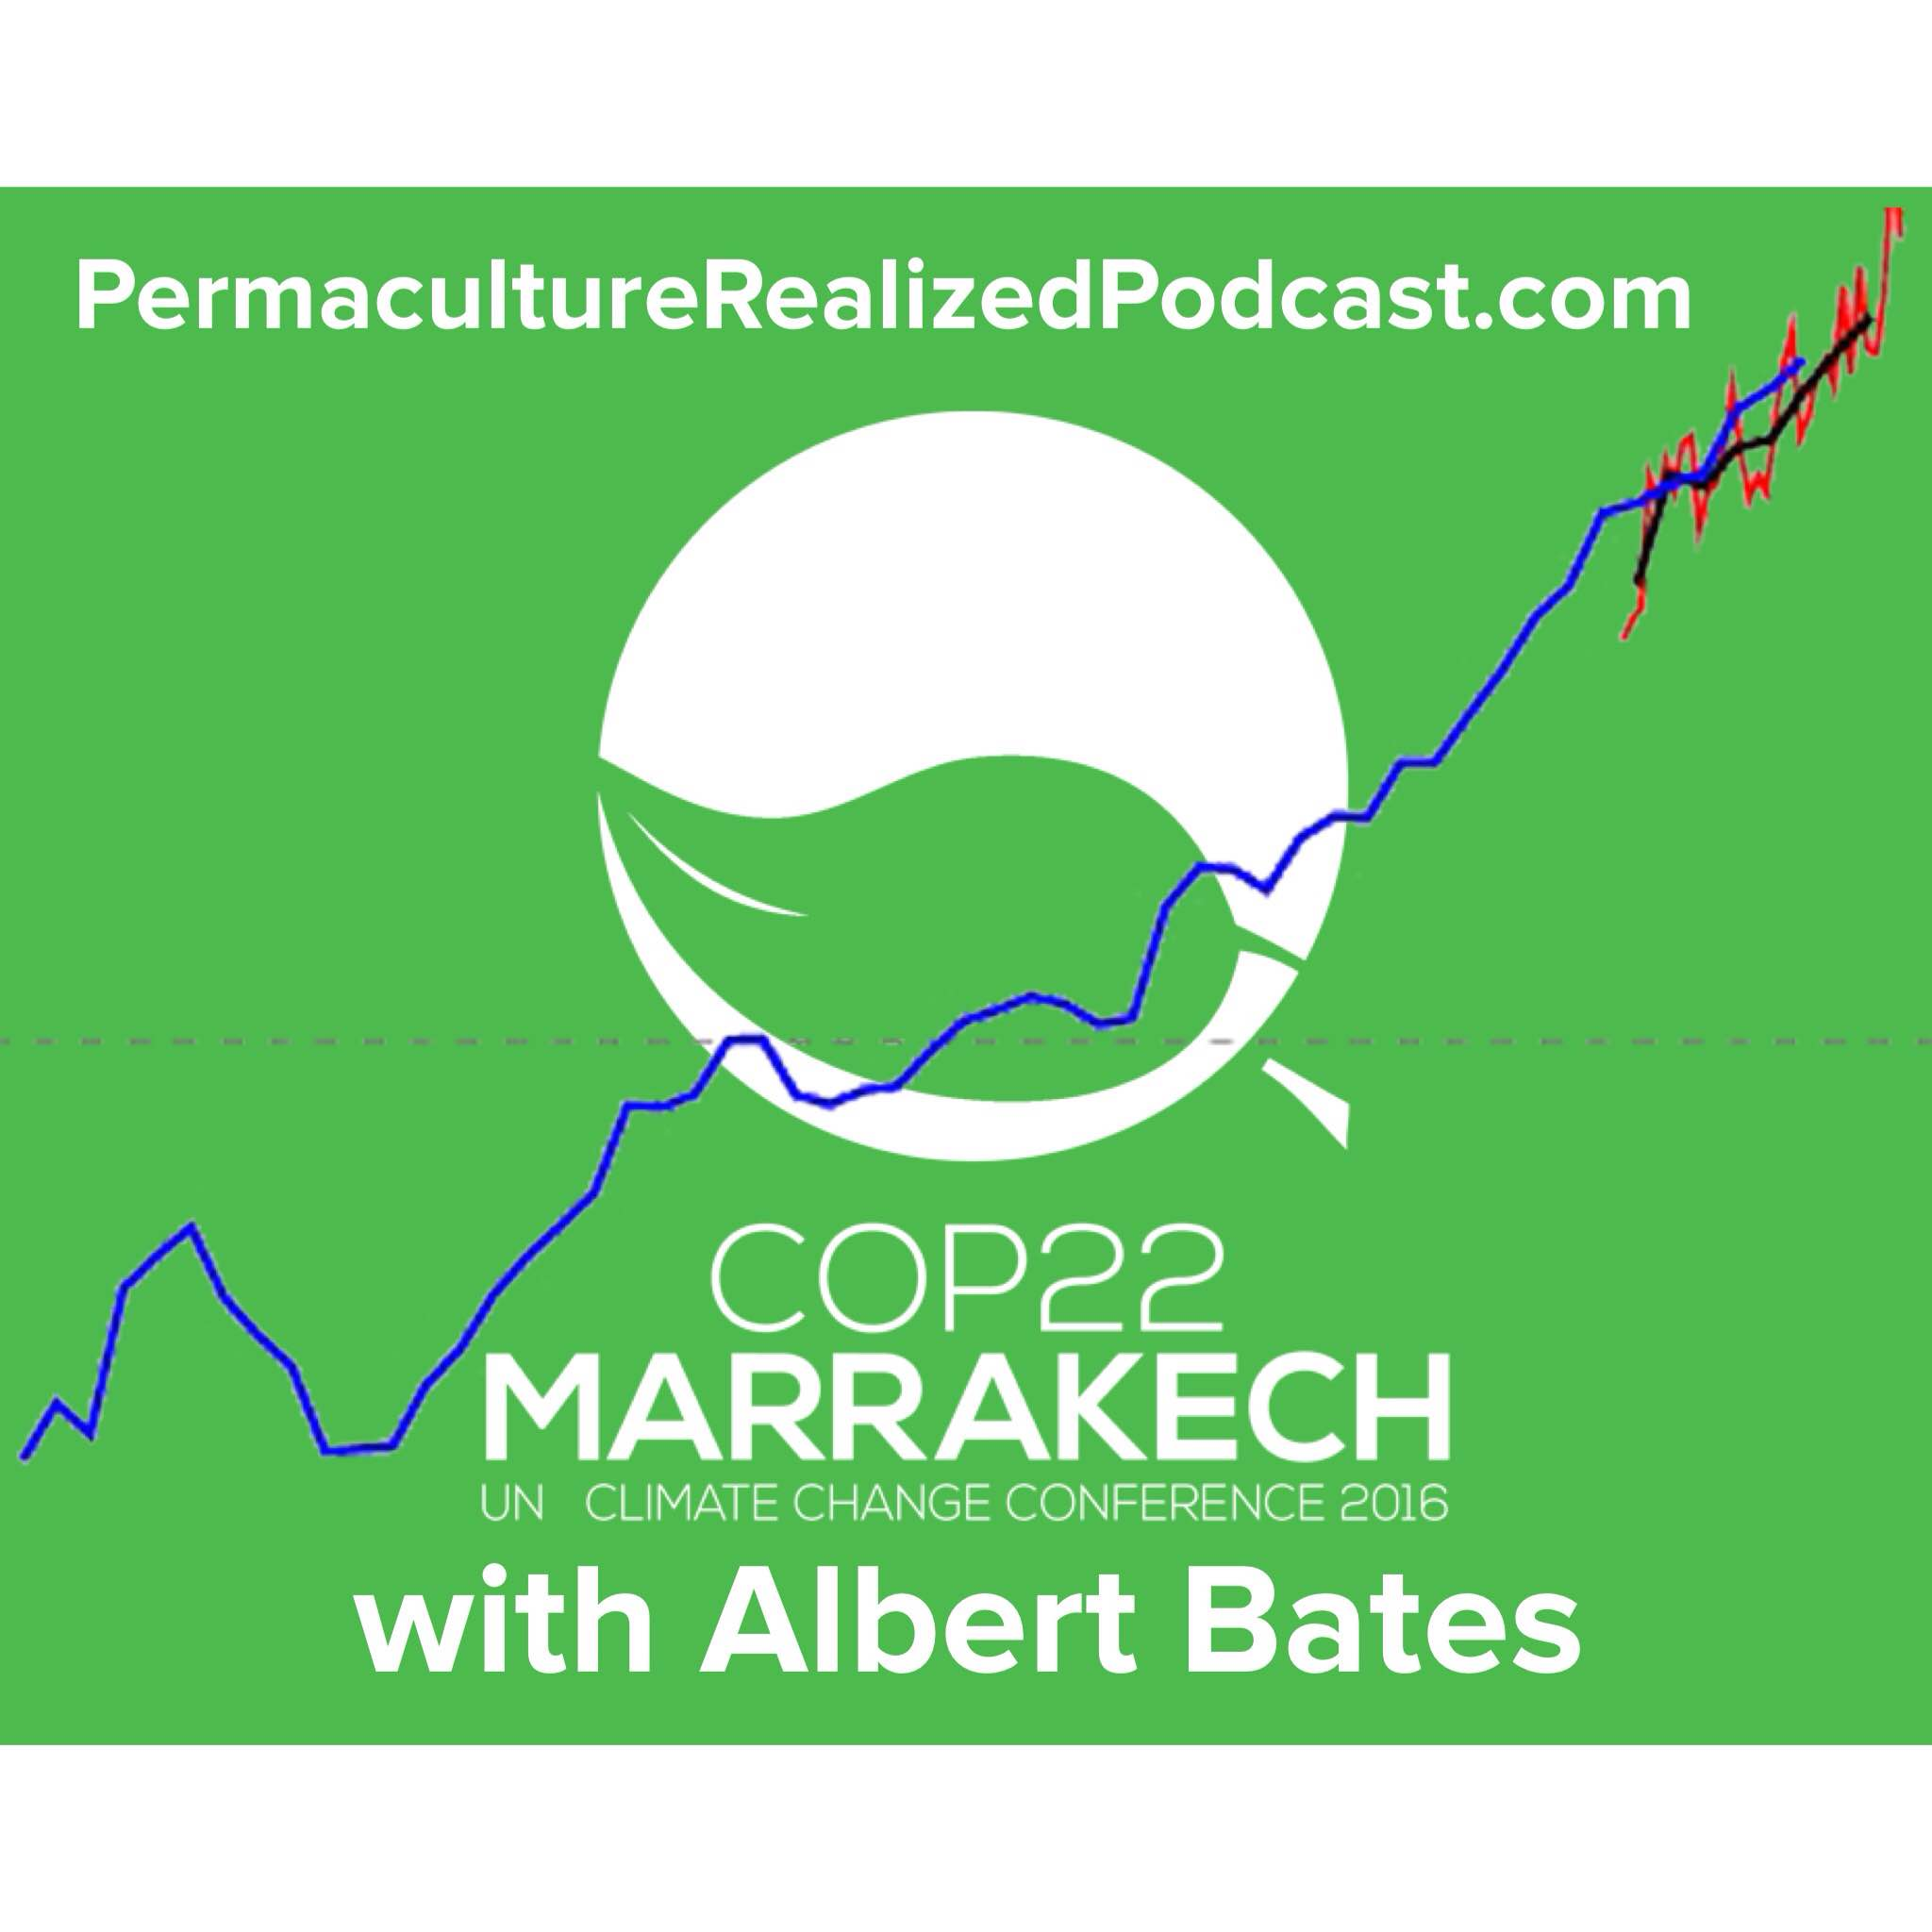 Permaculture Realized Podcast Episode 28, Inside COP22 Marrakech with Albert Bates